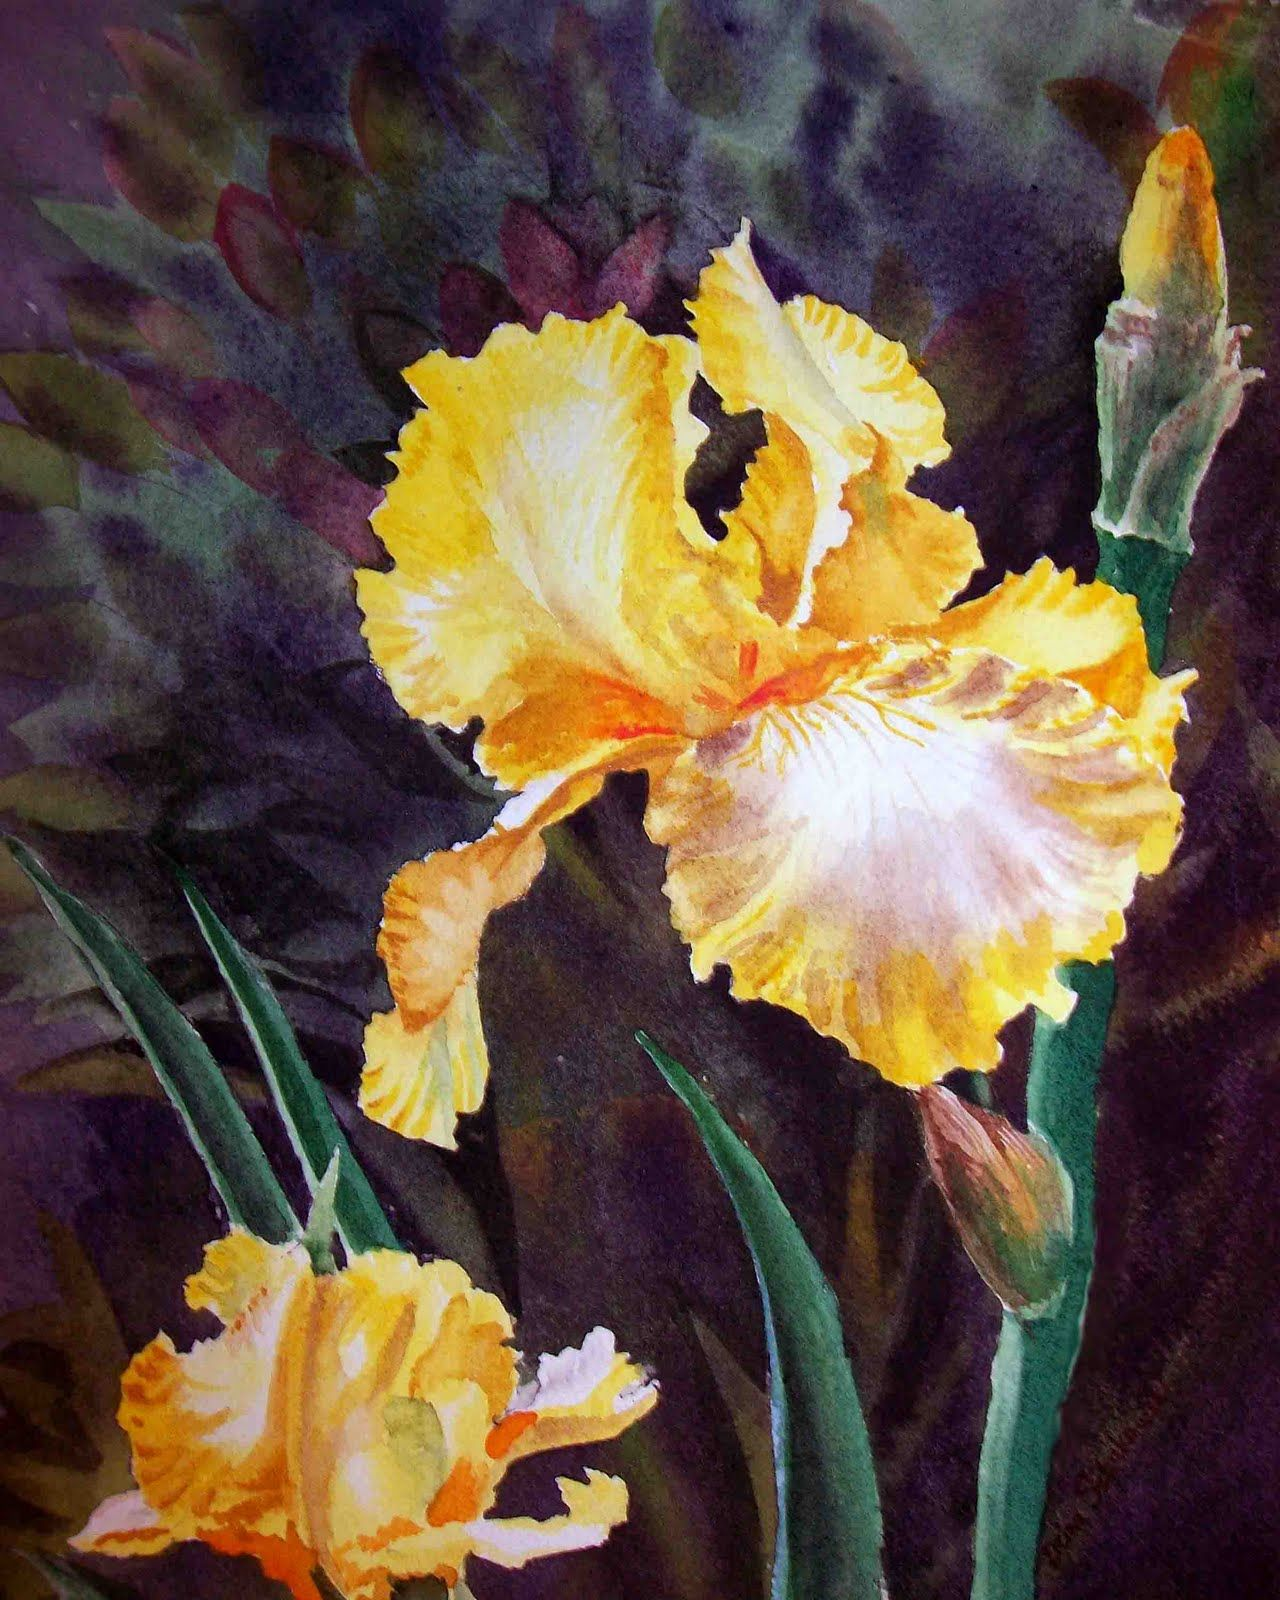 Watercolor paintings of a iris flower yahoo image search results watercolor paintings of a iris flower yahoo image search results izmirmasajfo